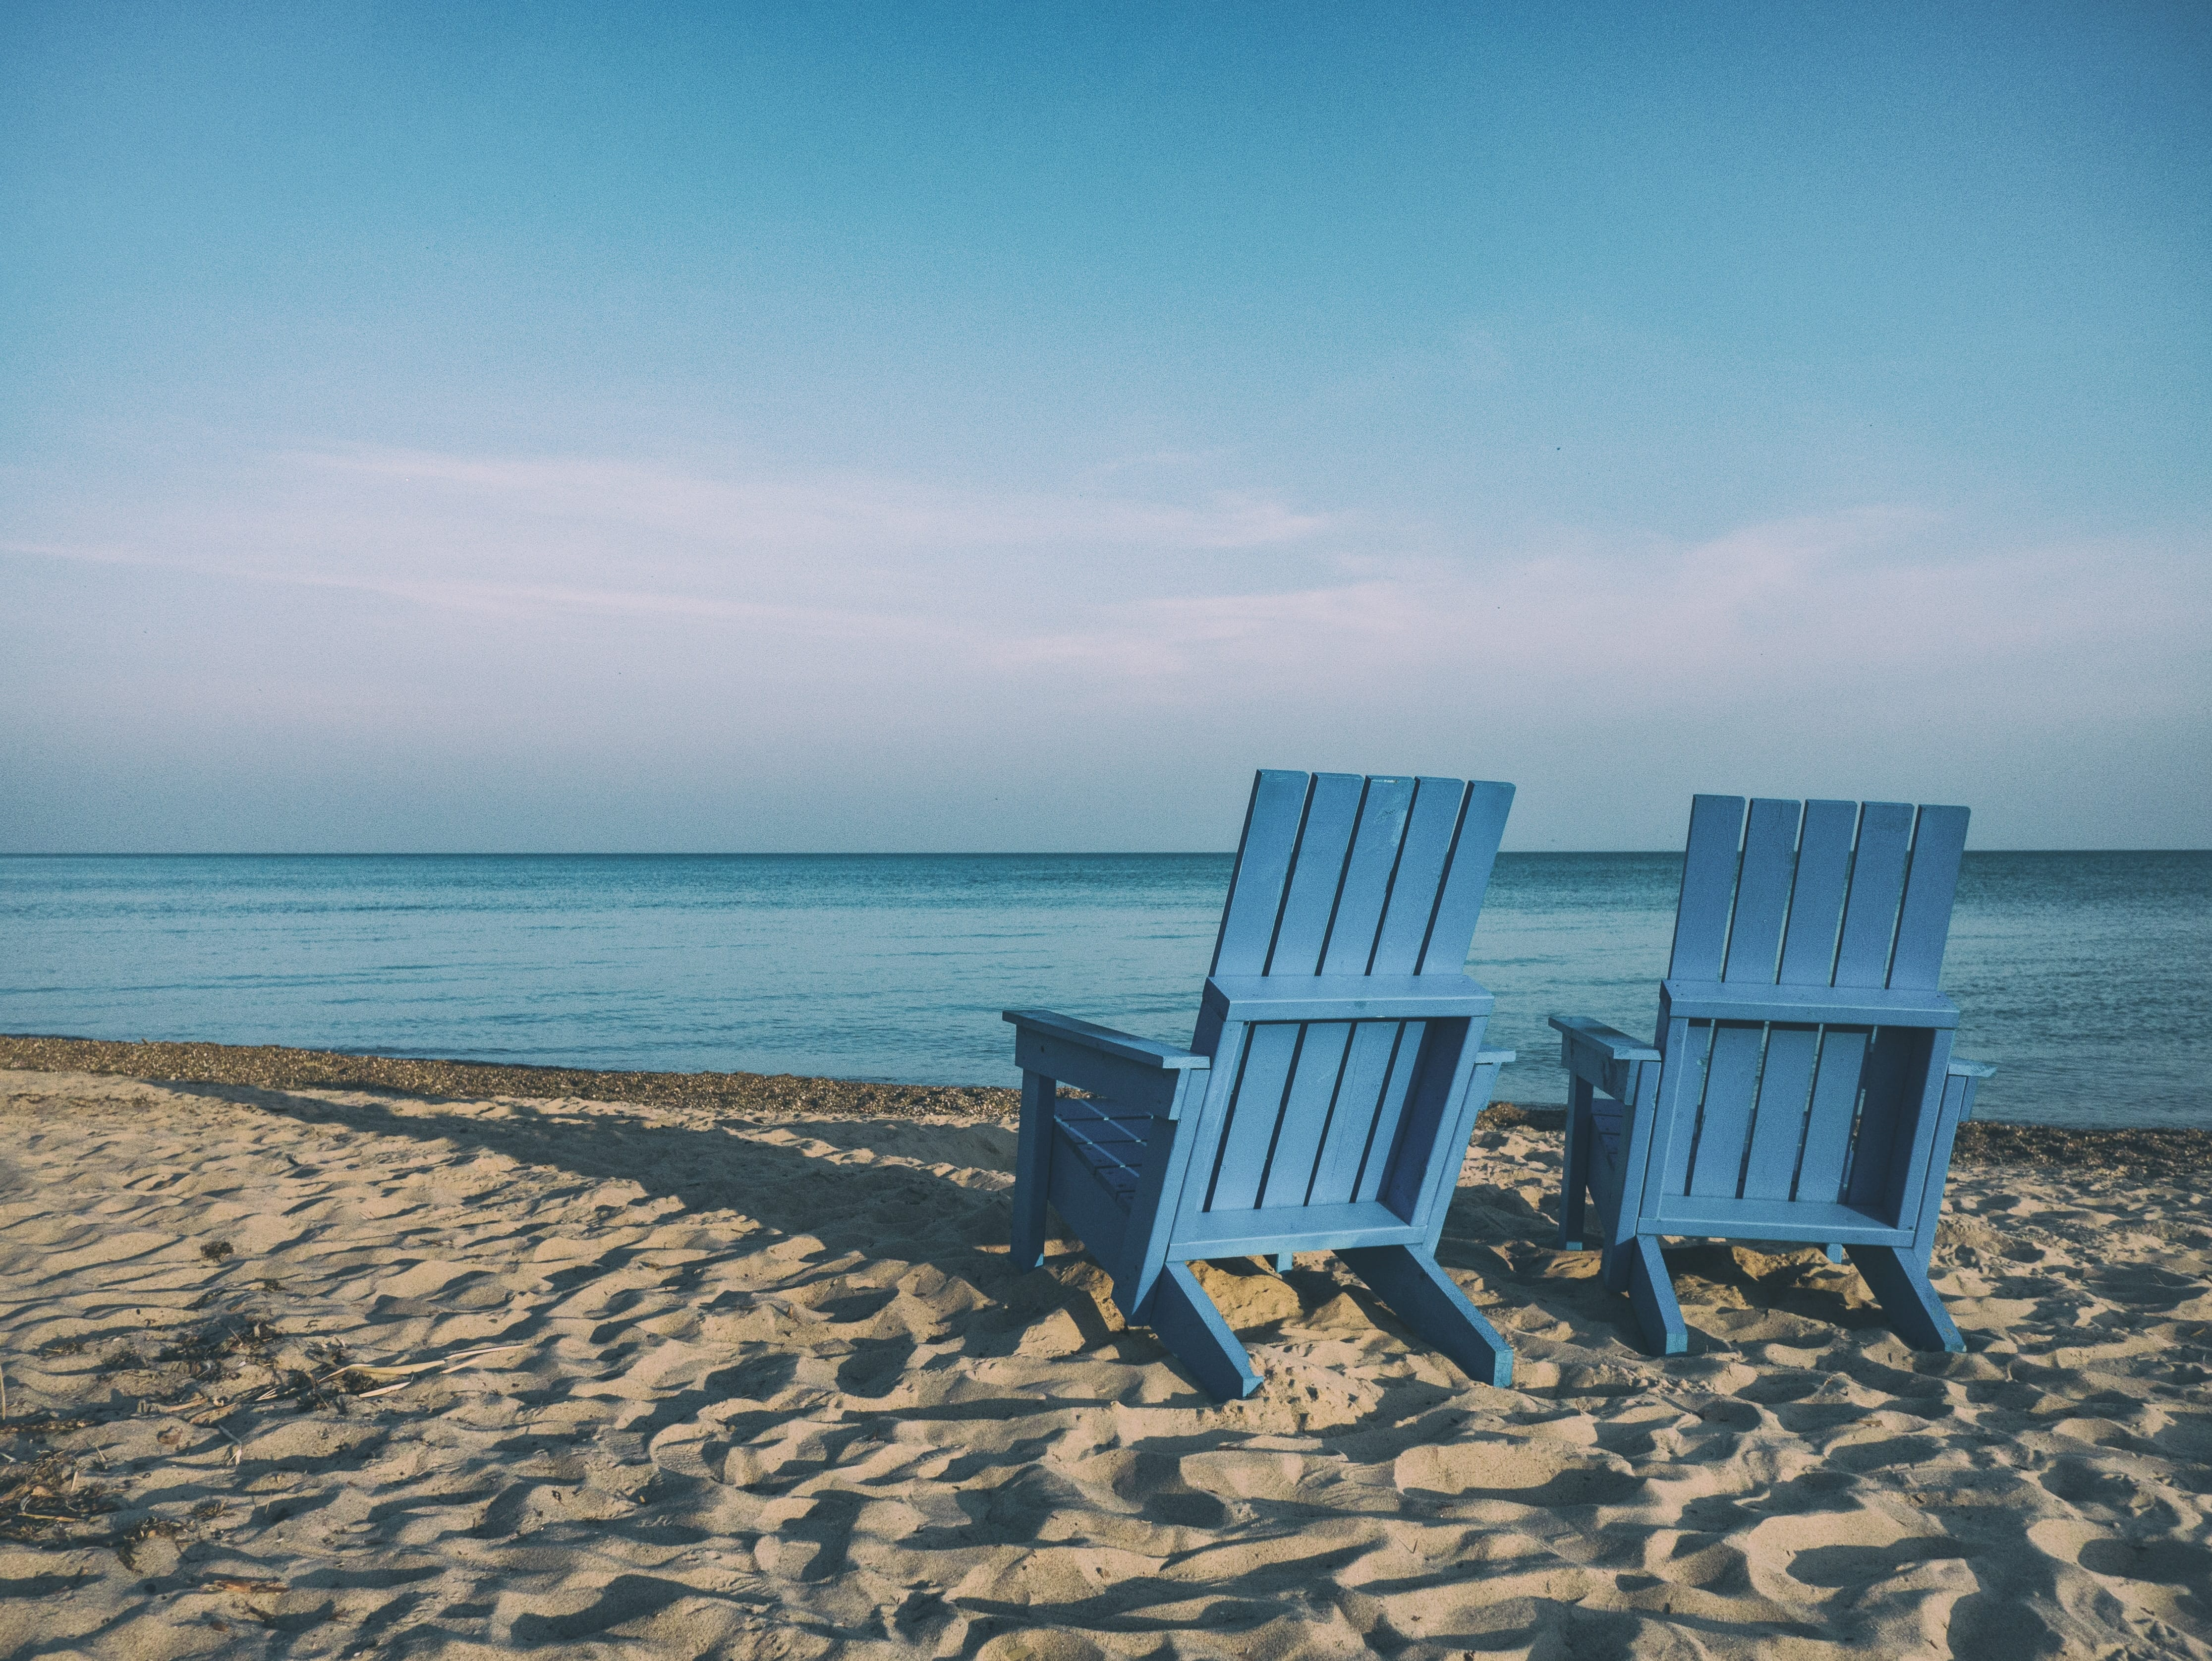 Two blue Adirondack chairs on the beach; image by Aaron Burden, via Unsplash.com.